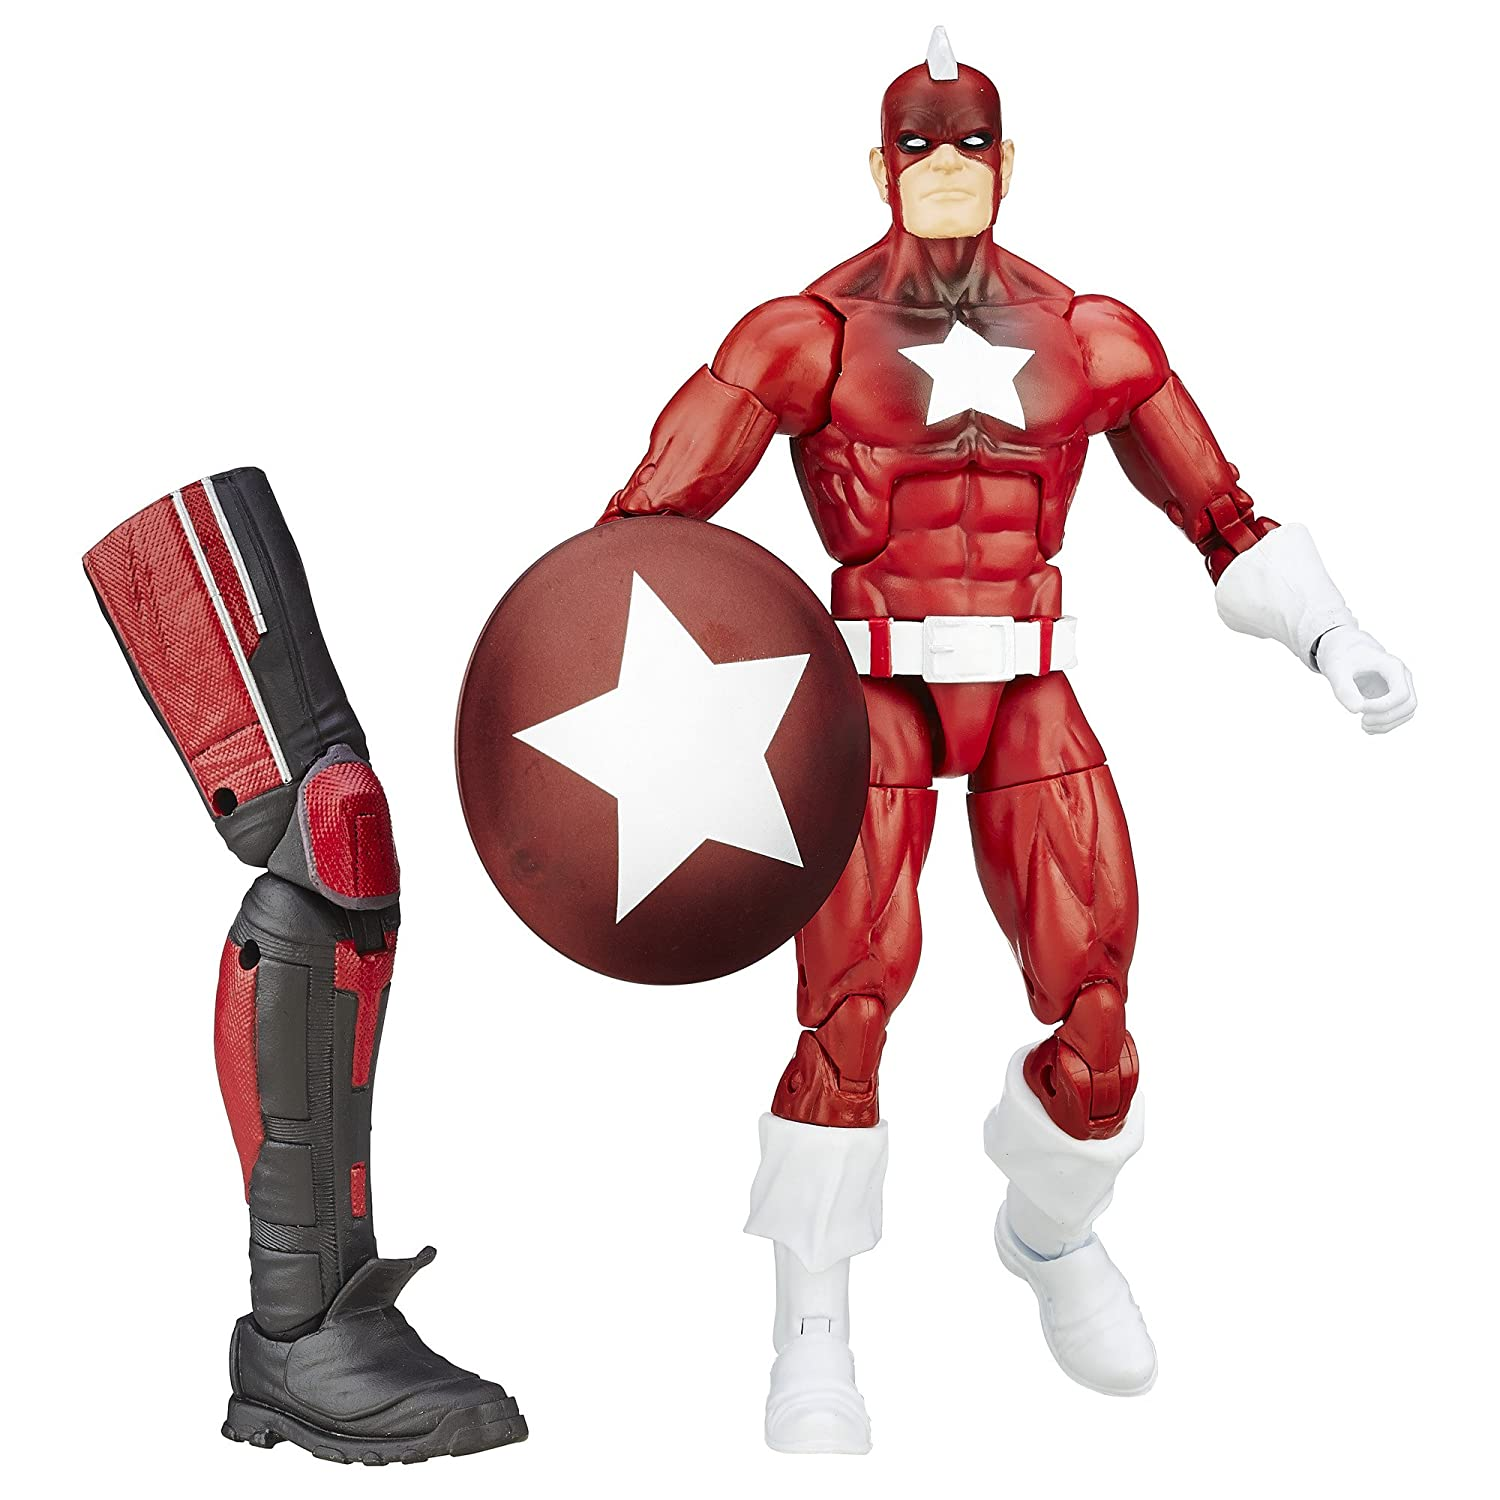 Marvel 6-Inch Legends Series Red Guardian Figure Hasbro B6879AS0